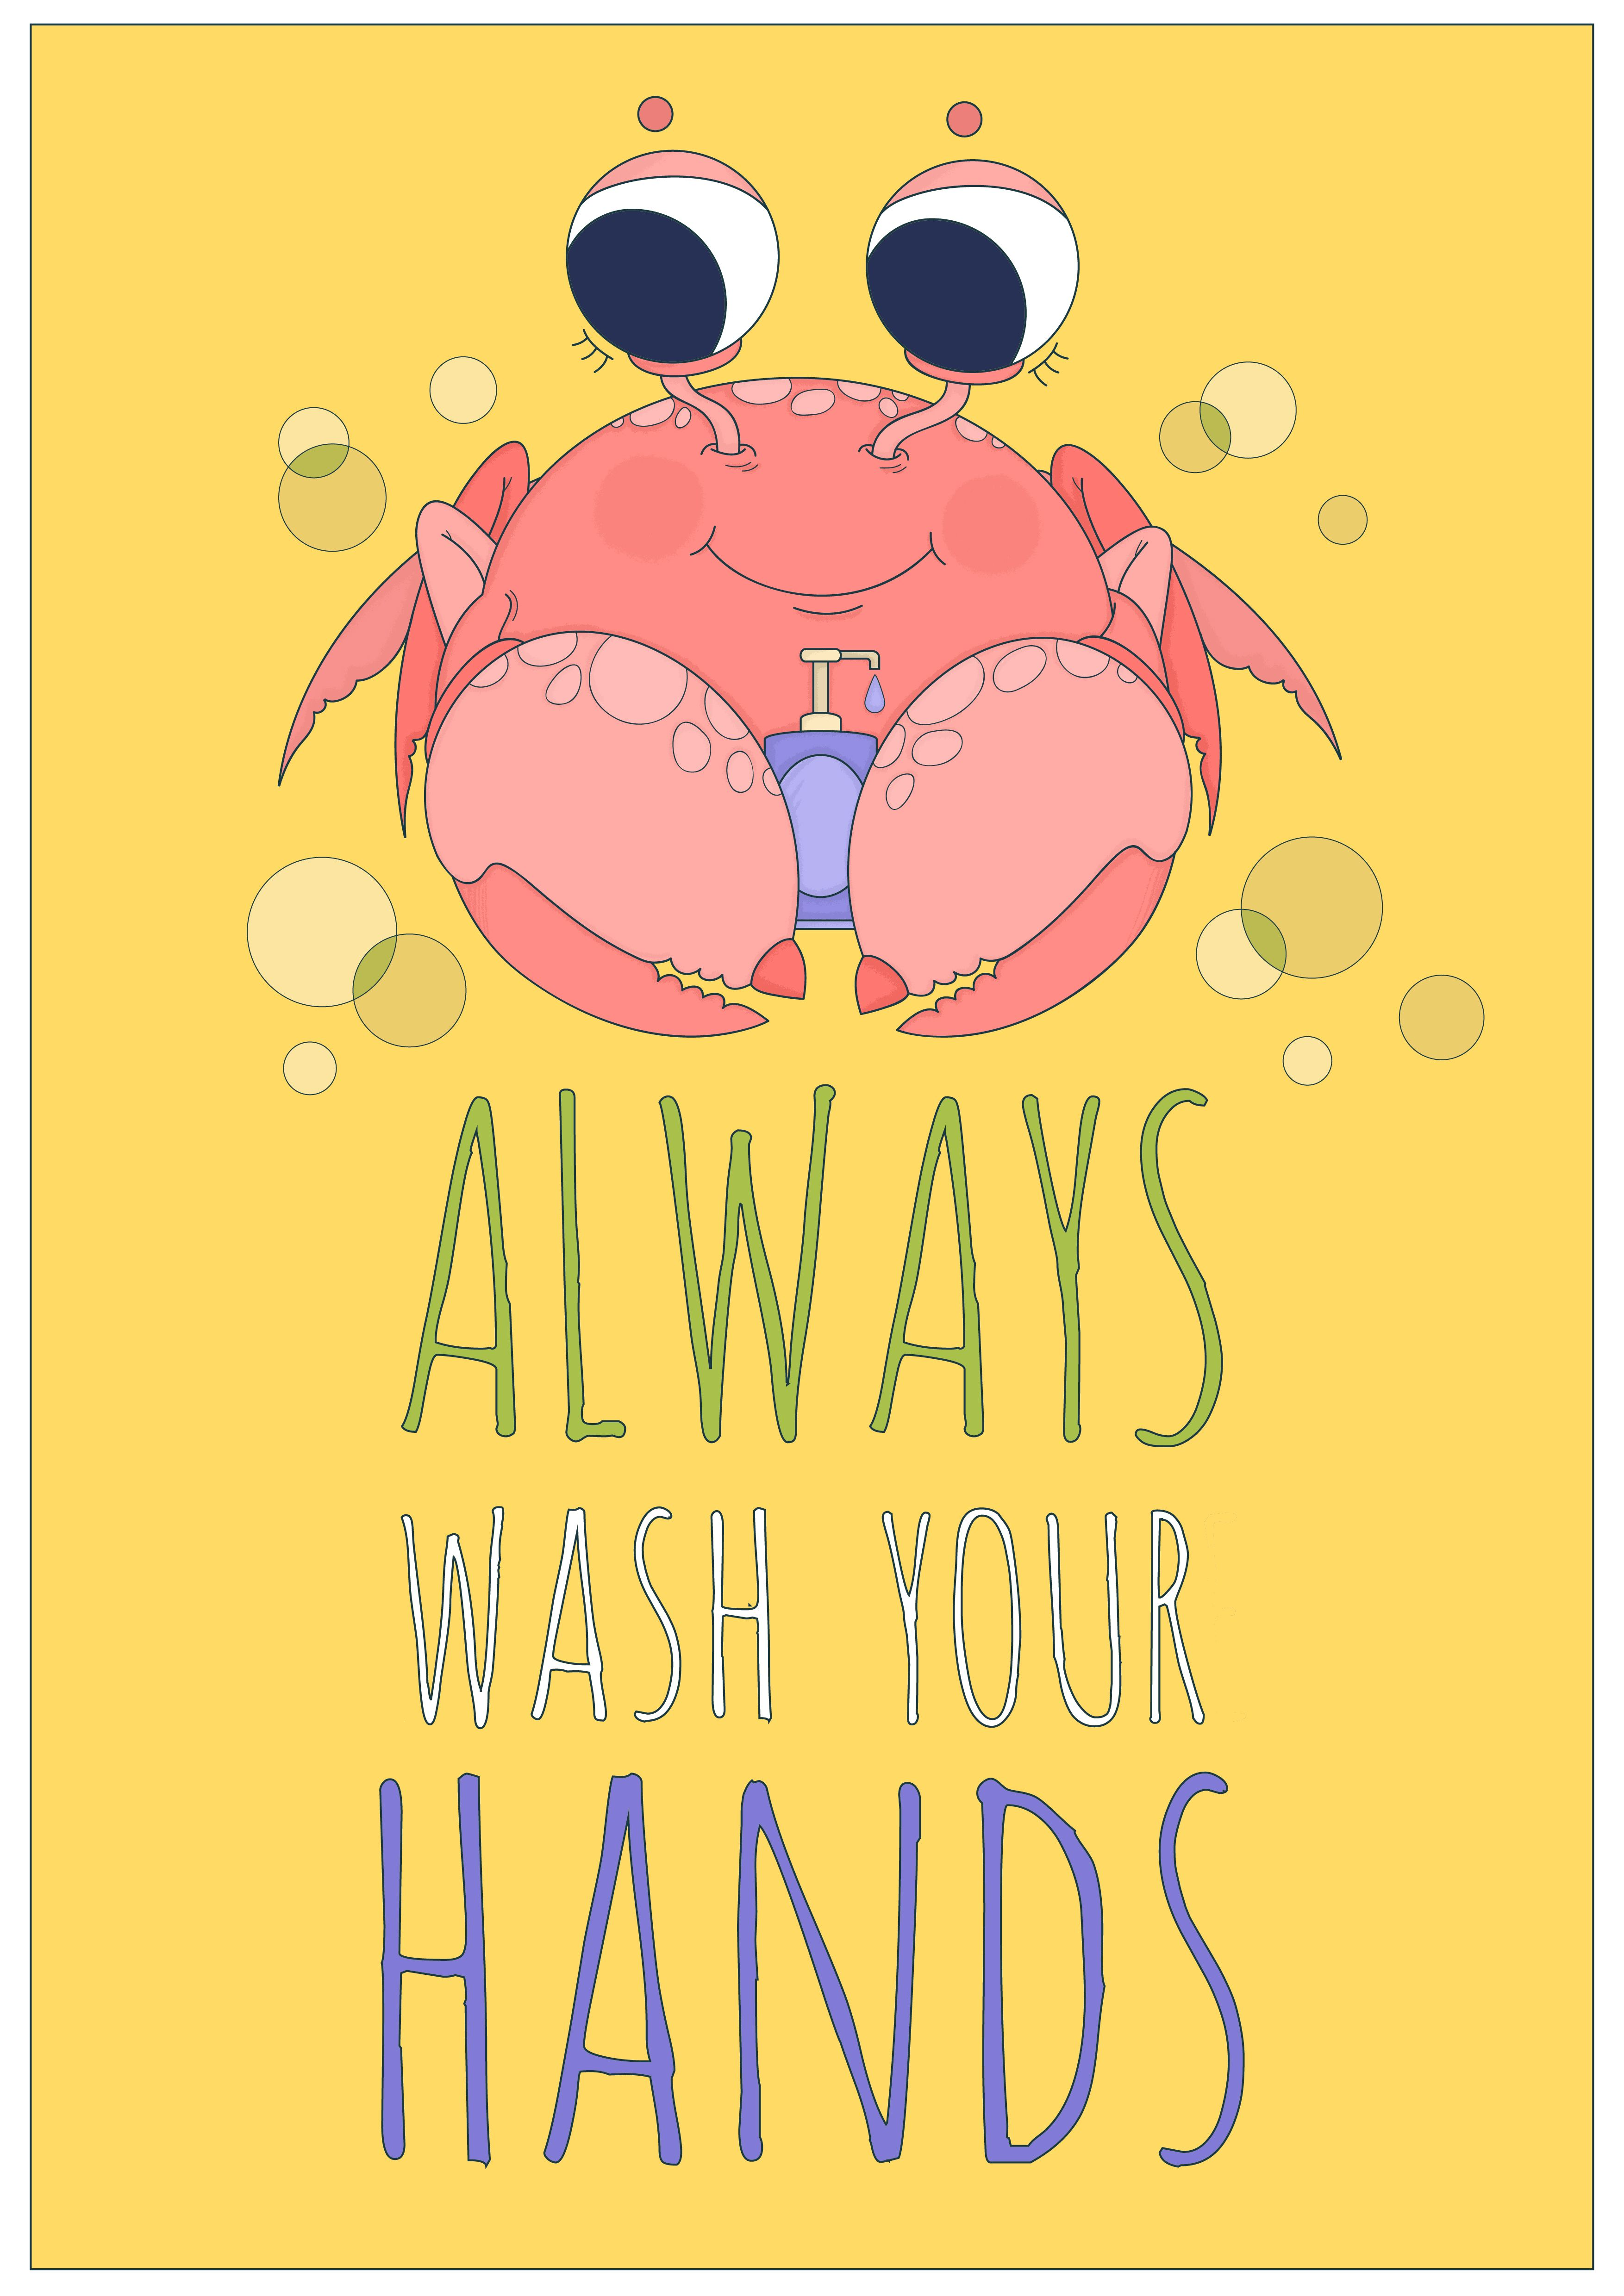 Bathroom Poster For Children Portraying A Funny Crab With Bottle Of Liquid Soap And